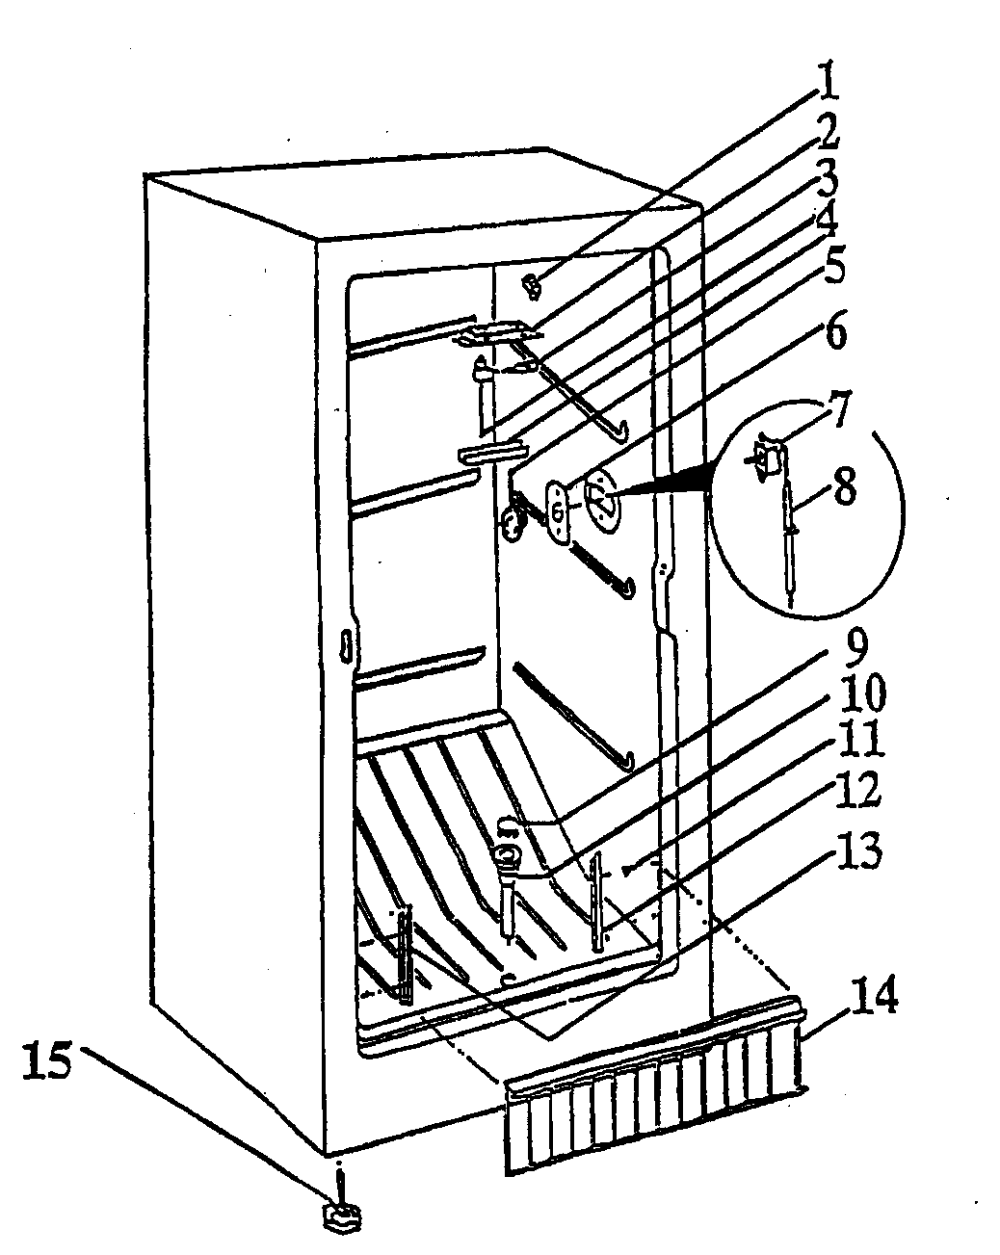 medium resolution of wc wood v07naa freezer compartment diagram